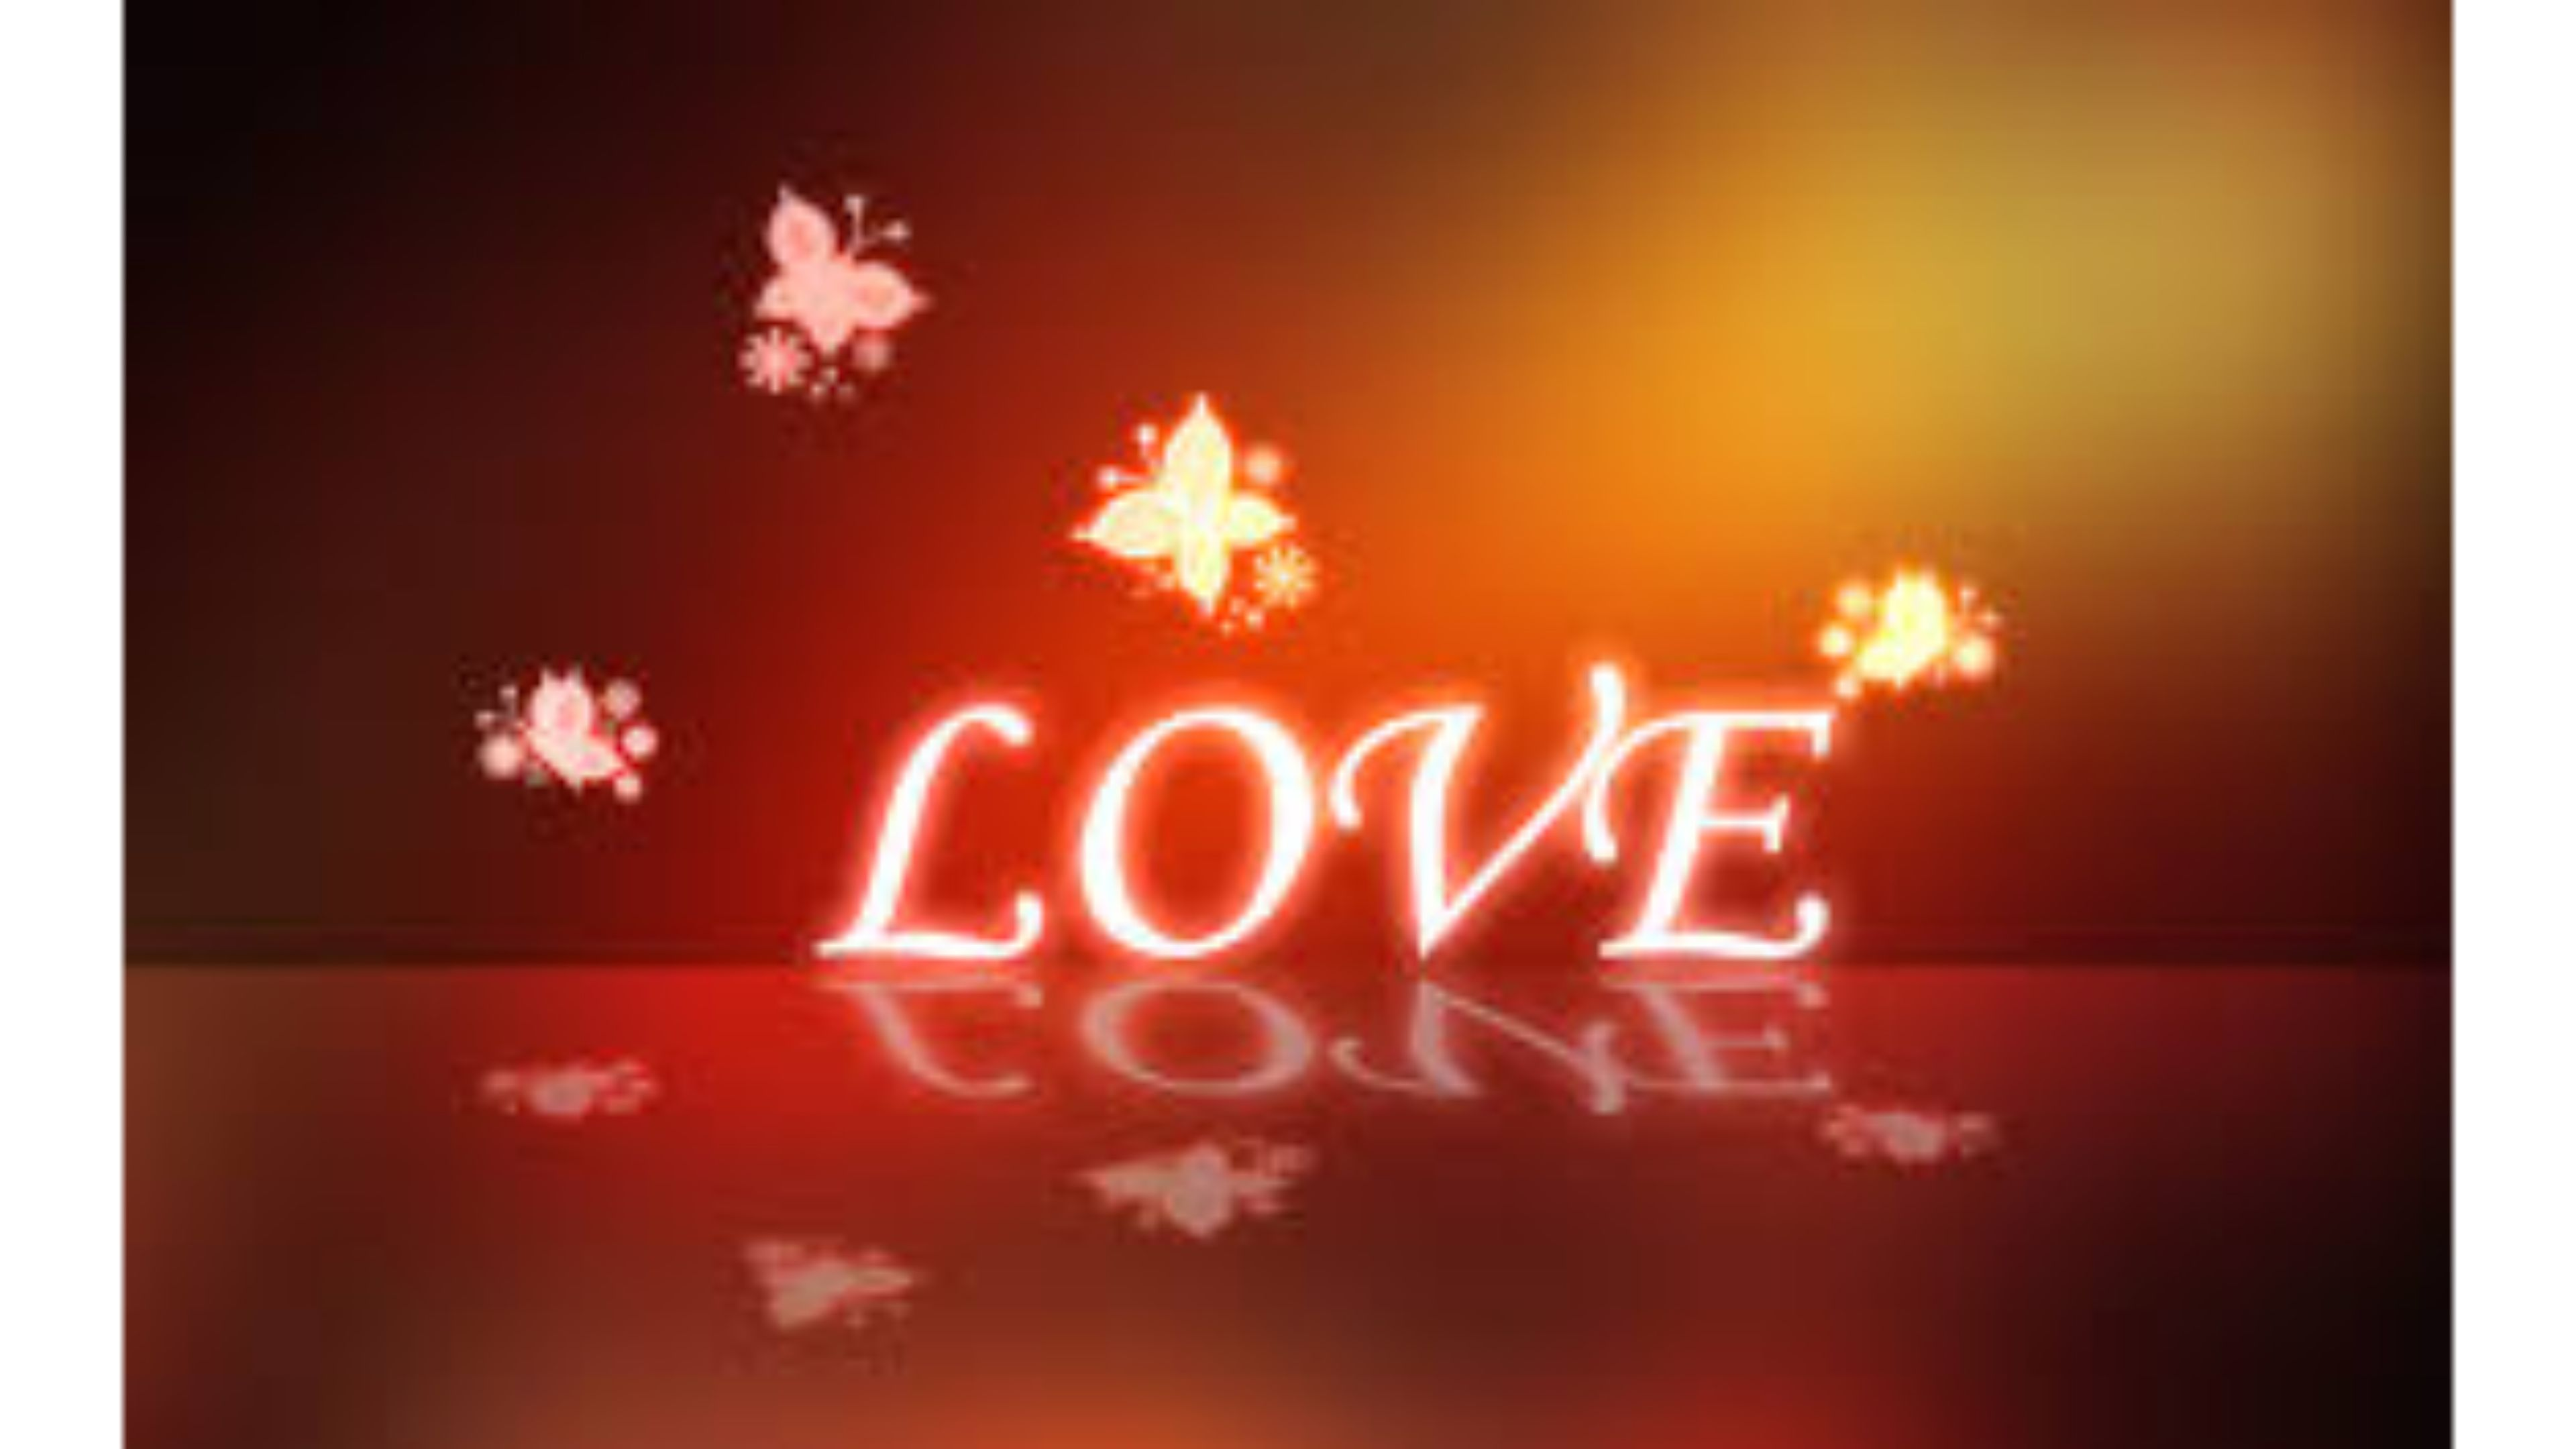 Love Wallpaper Unique : unique wallpapers, photos and desktop backgrounds up to 8K [7680x4320] resolution